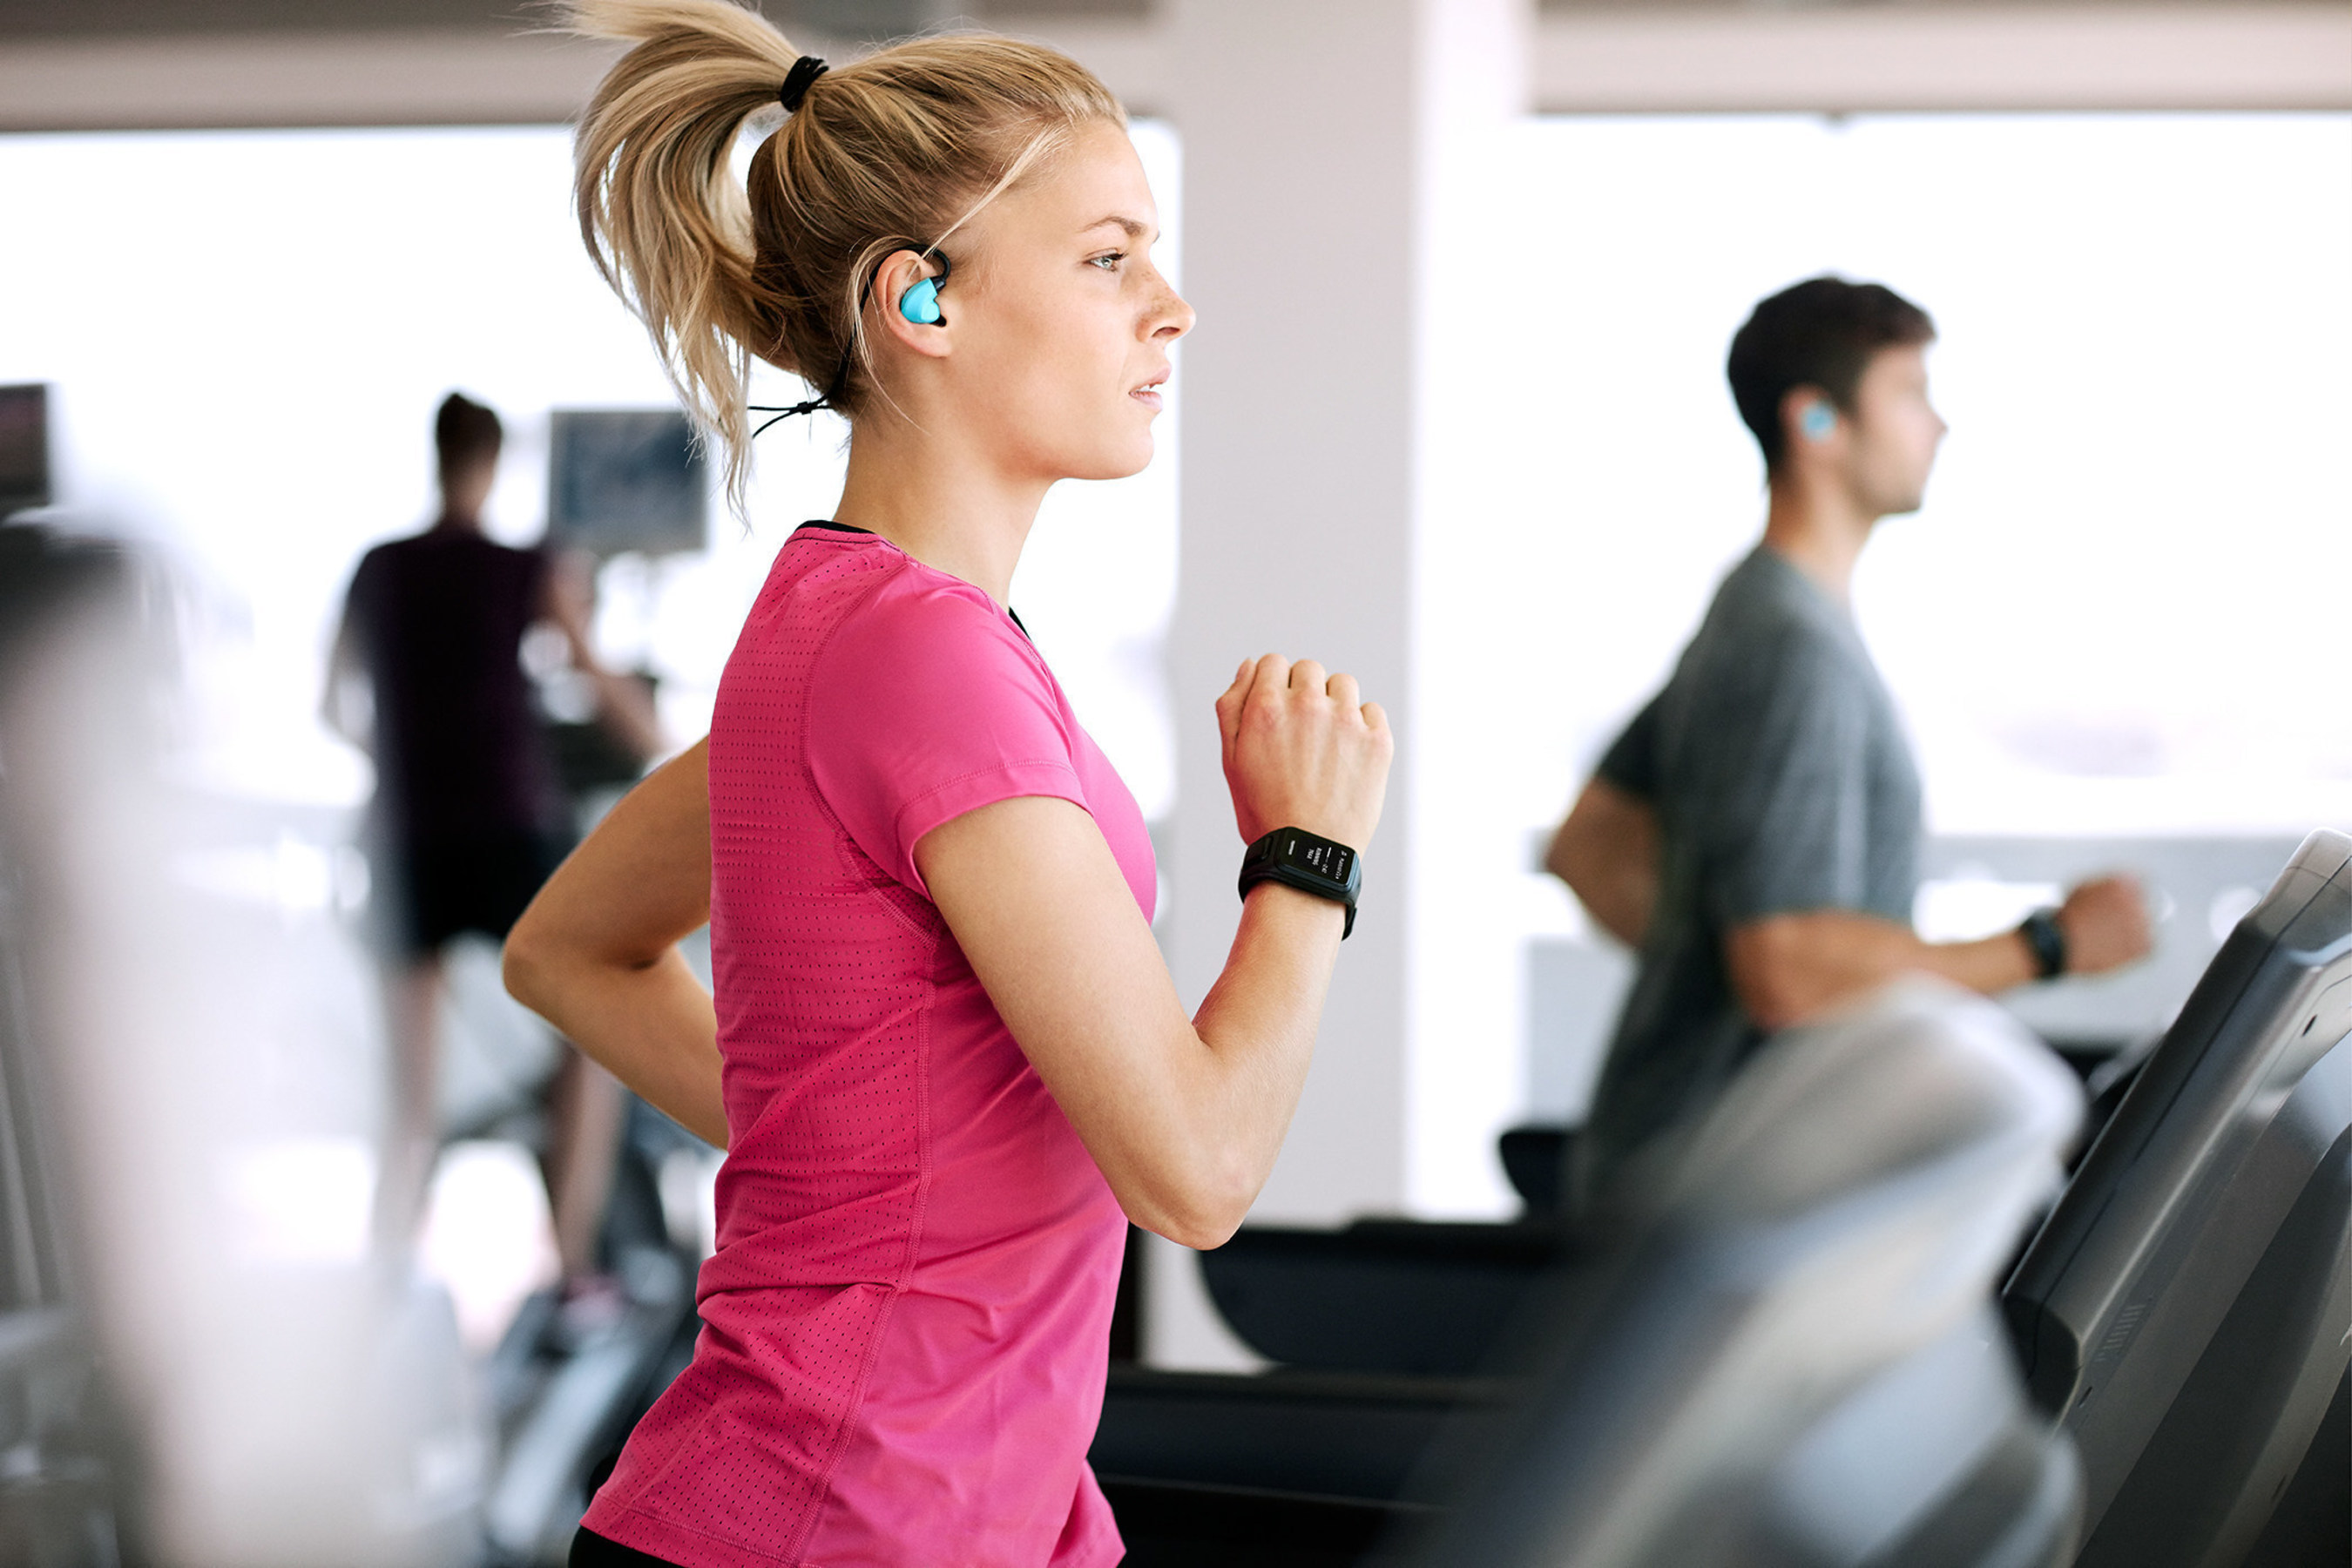 TomTom Brings The Beat To Fitness With Spark: New Wearable Featuring On-Board Music